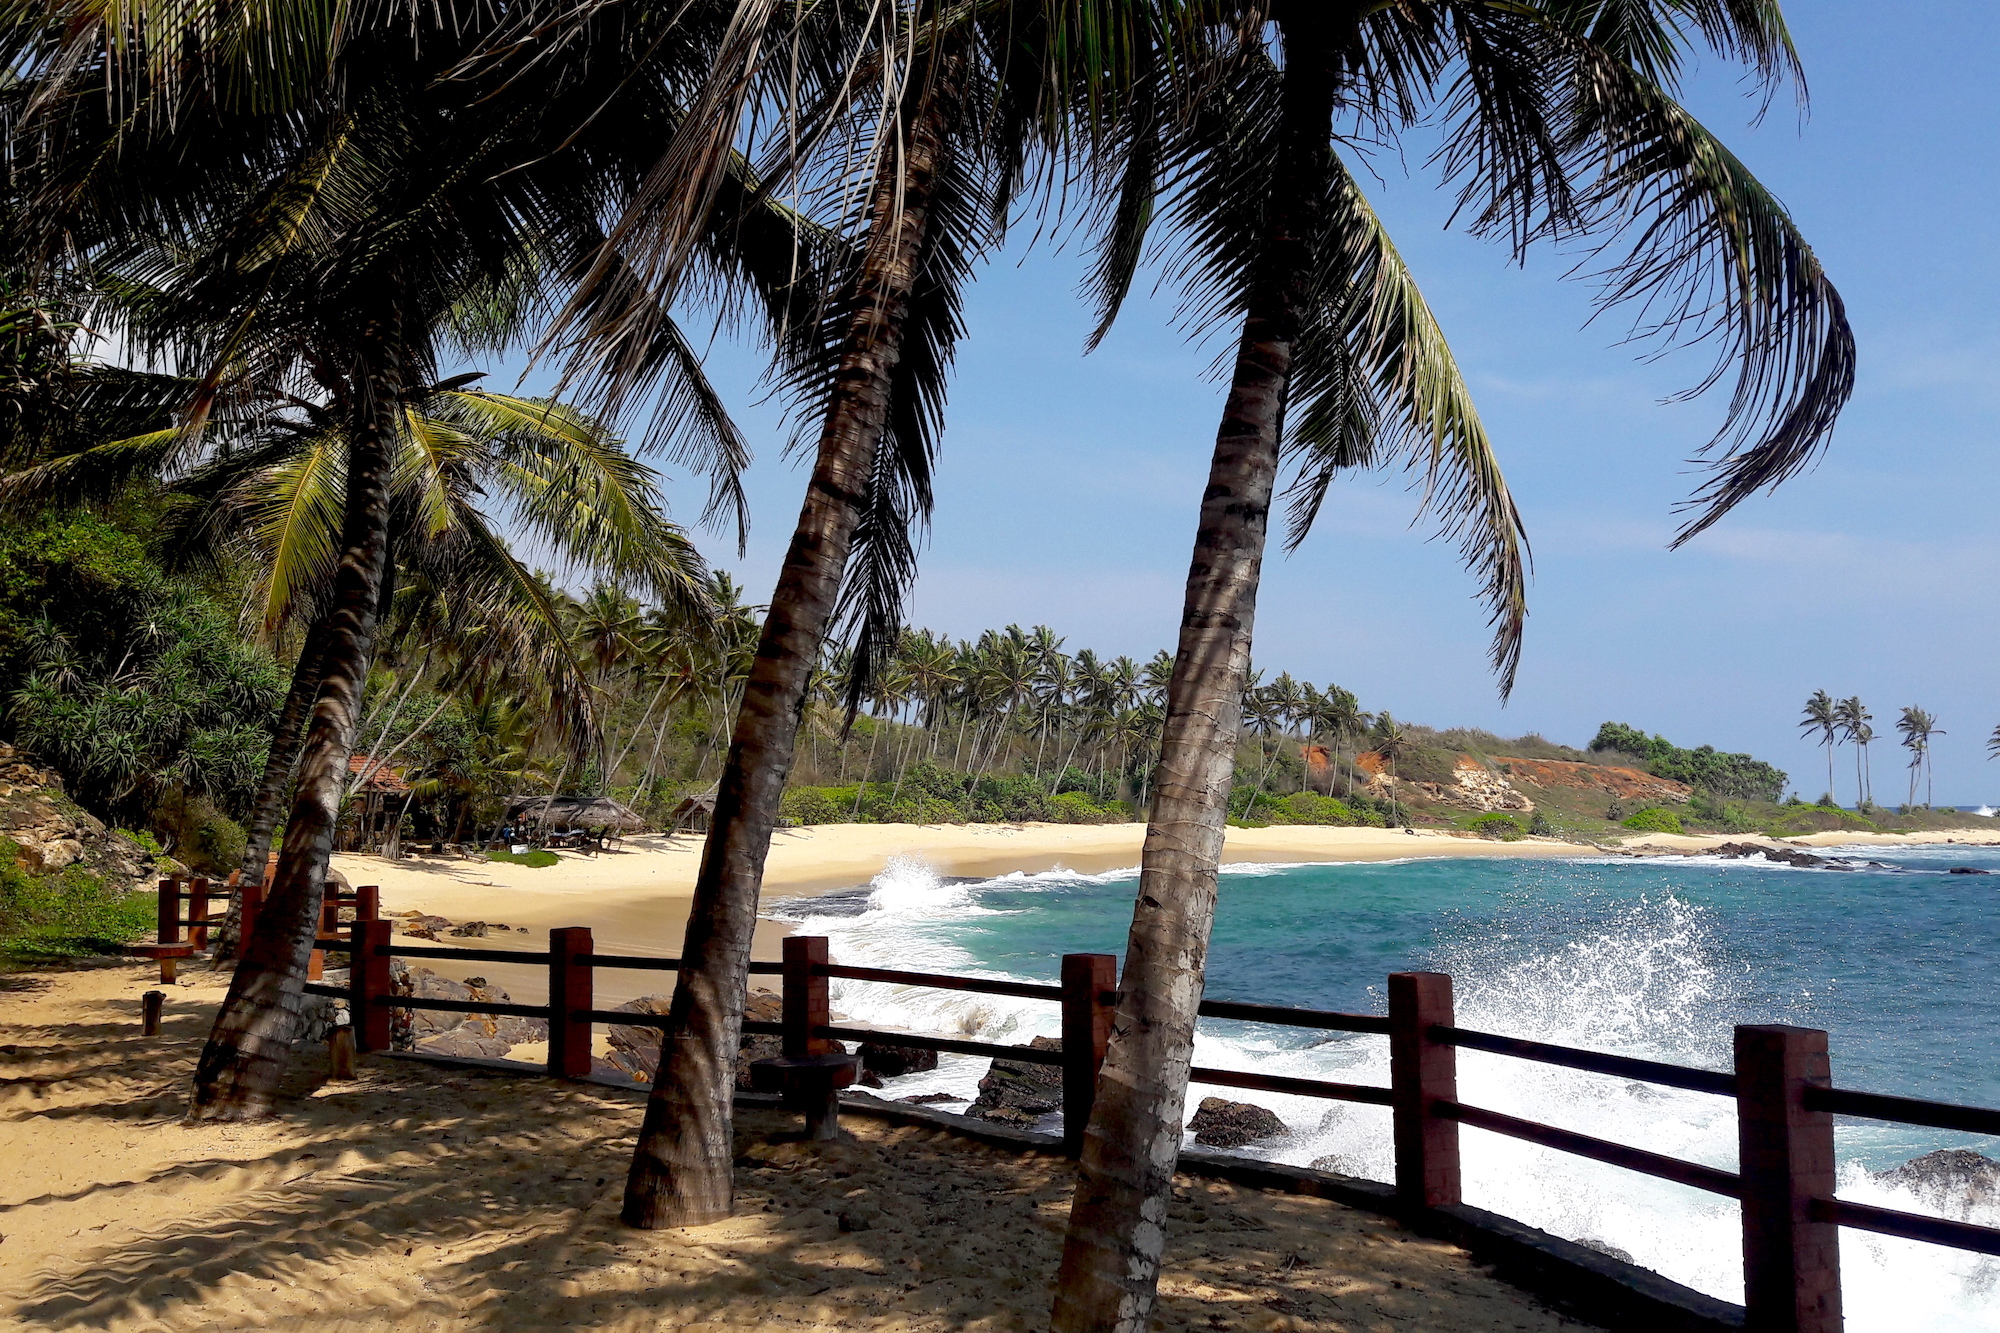 How to Get to and Around Sri Lanka